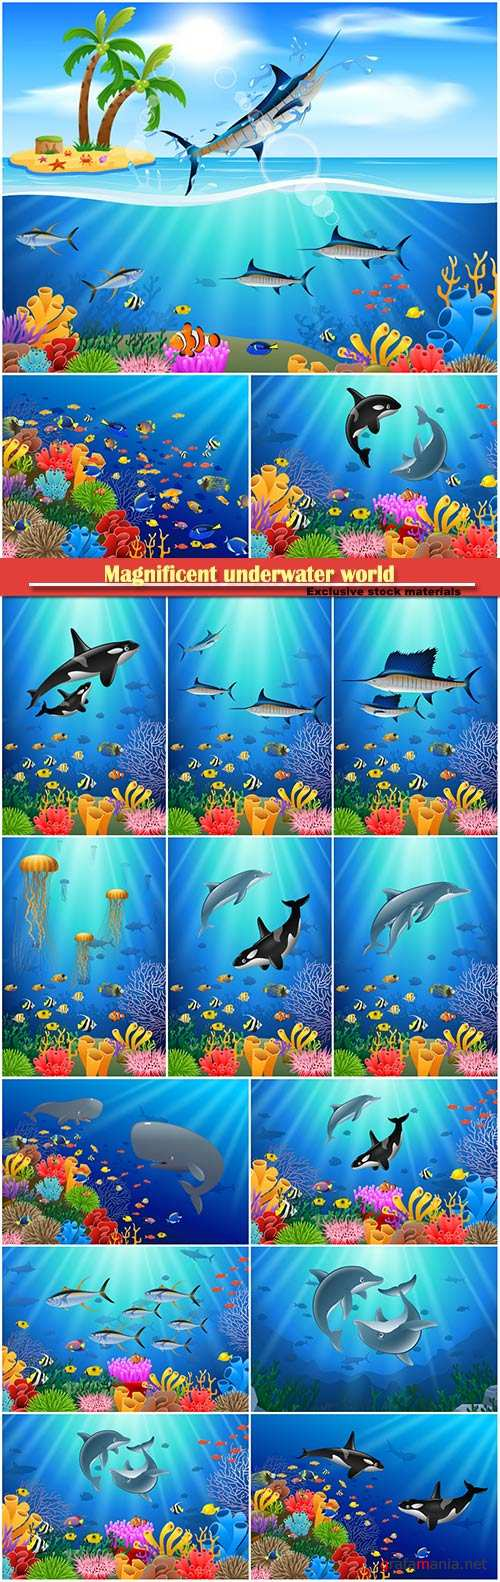 Magnificent underwater world and its inhabitants, vector dolphins, whales, fishes